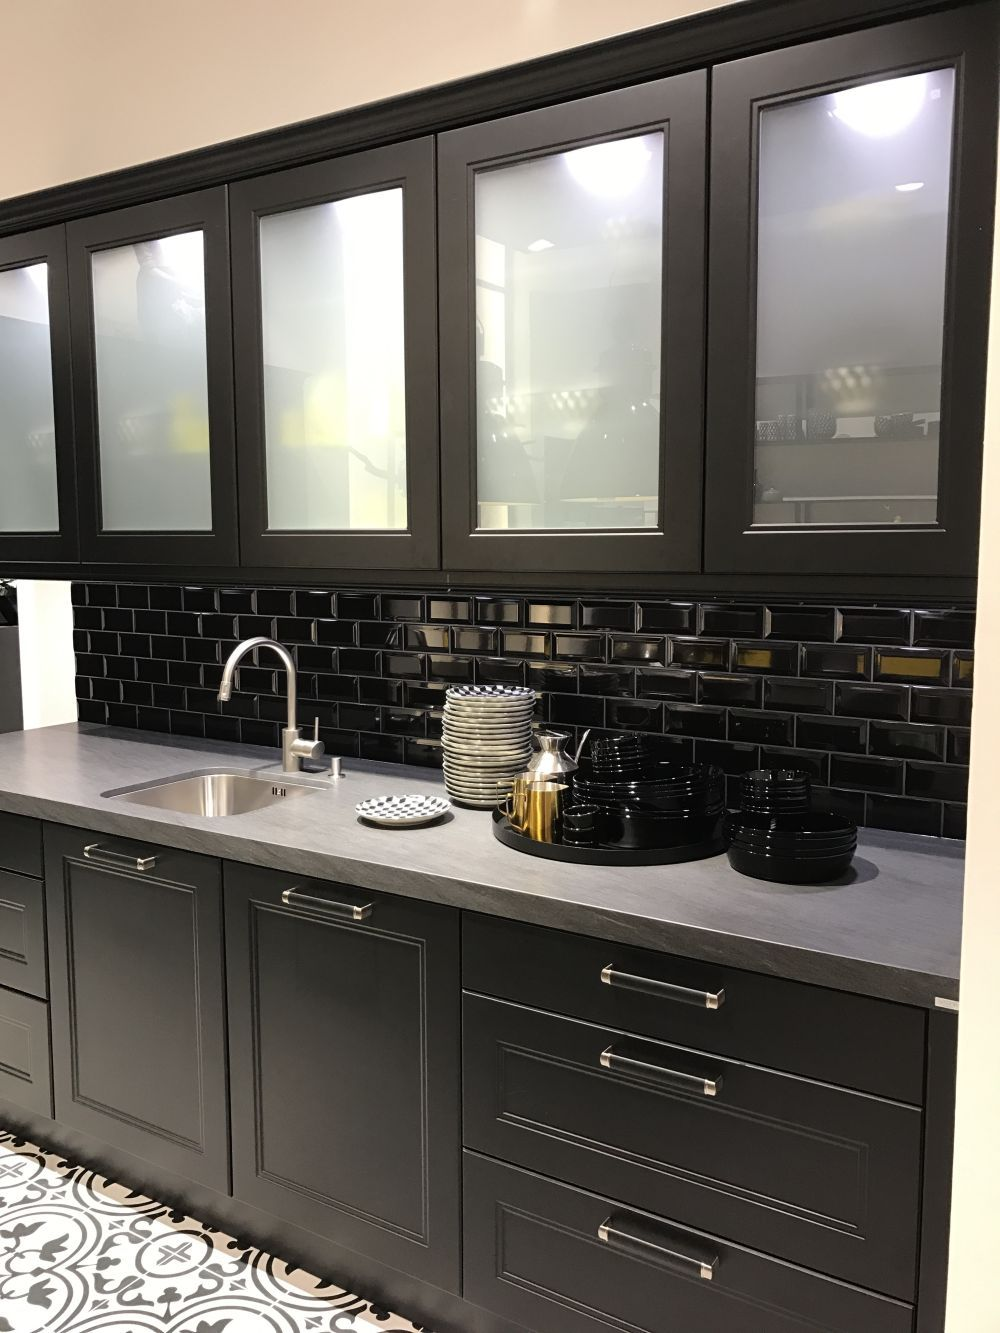 Black Kitchen Cabinets With Subway Tiles And White Frosted Gl Doors Framed Home Decorating Trends Homedit Qualquest